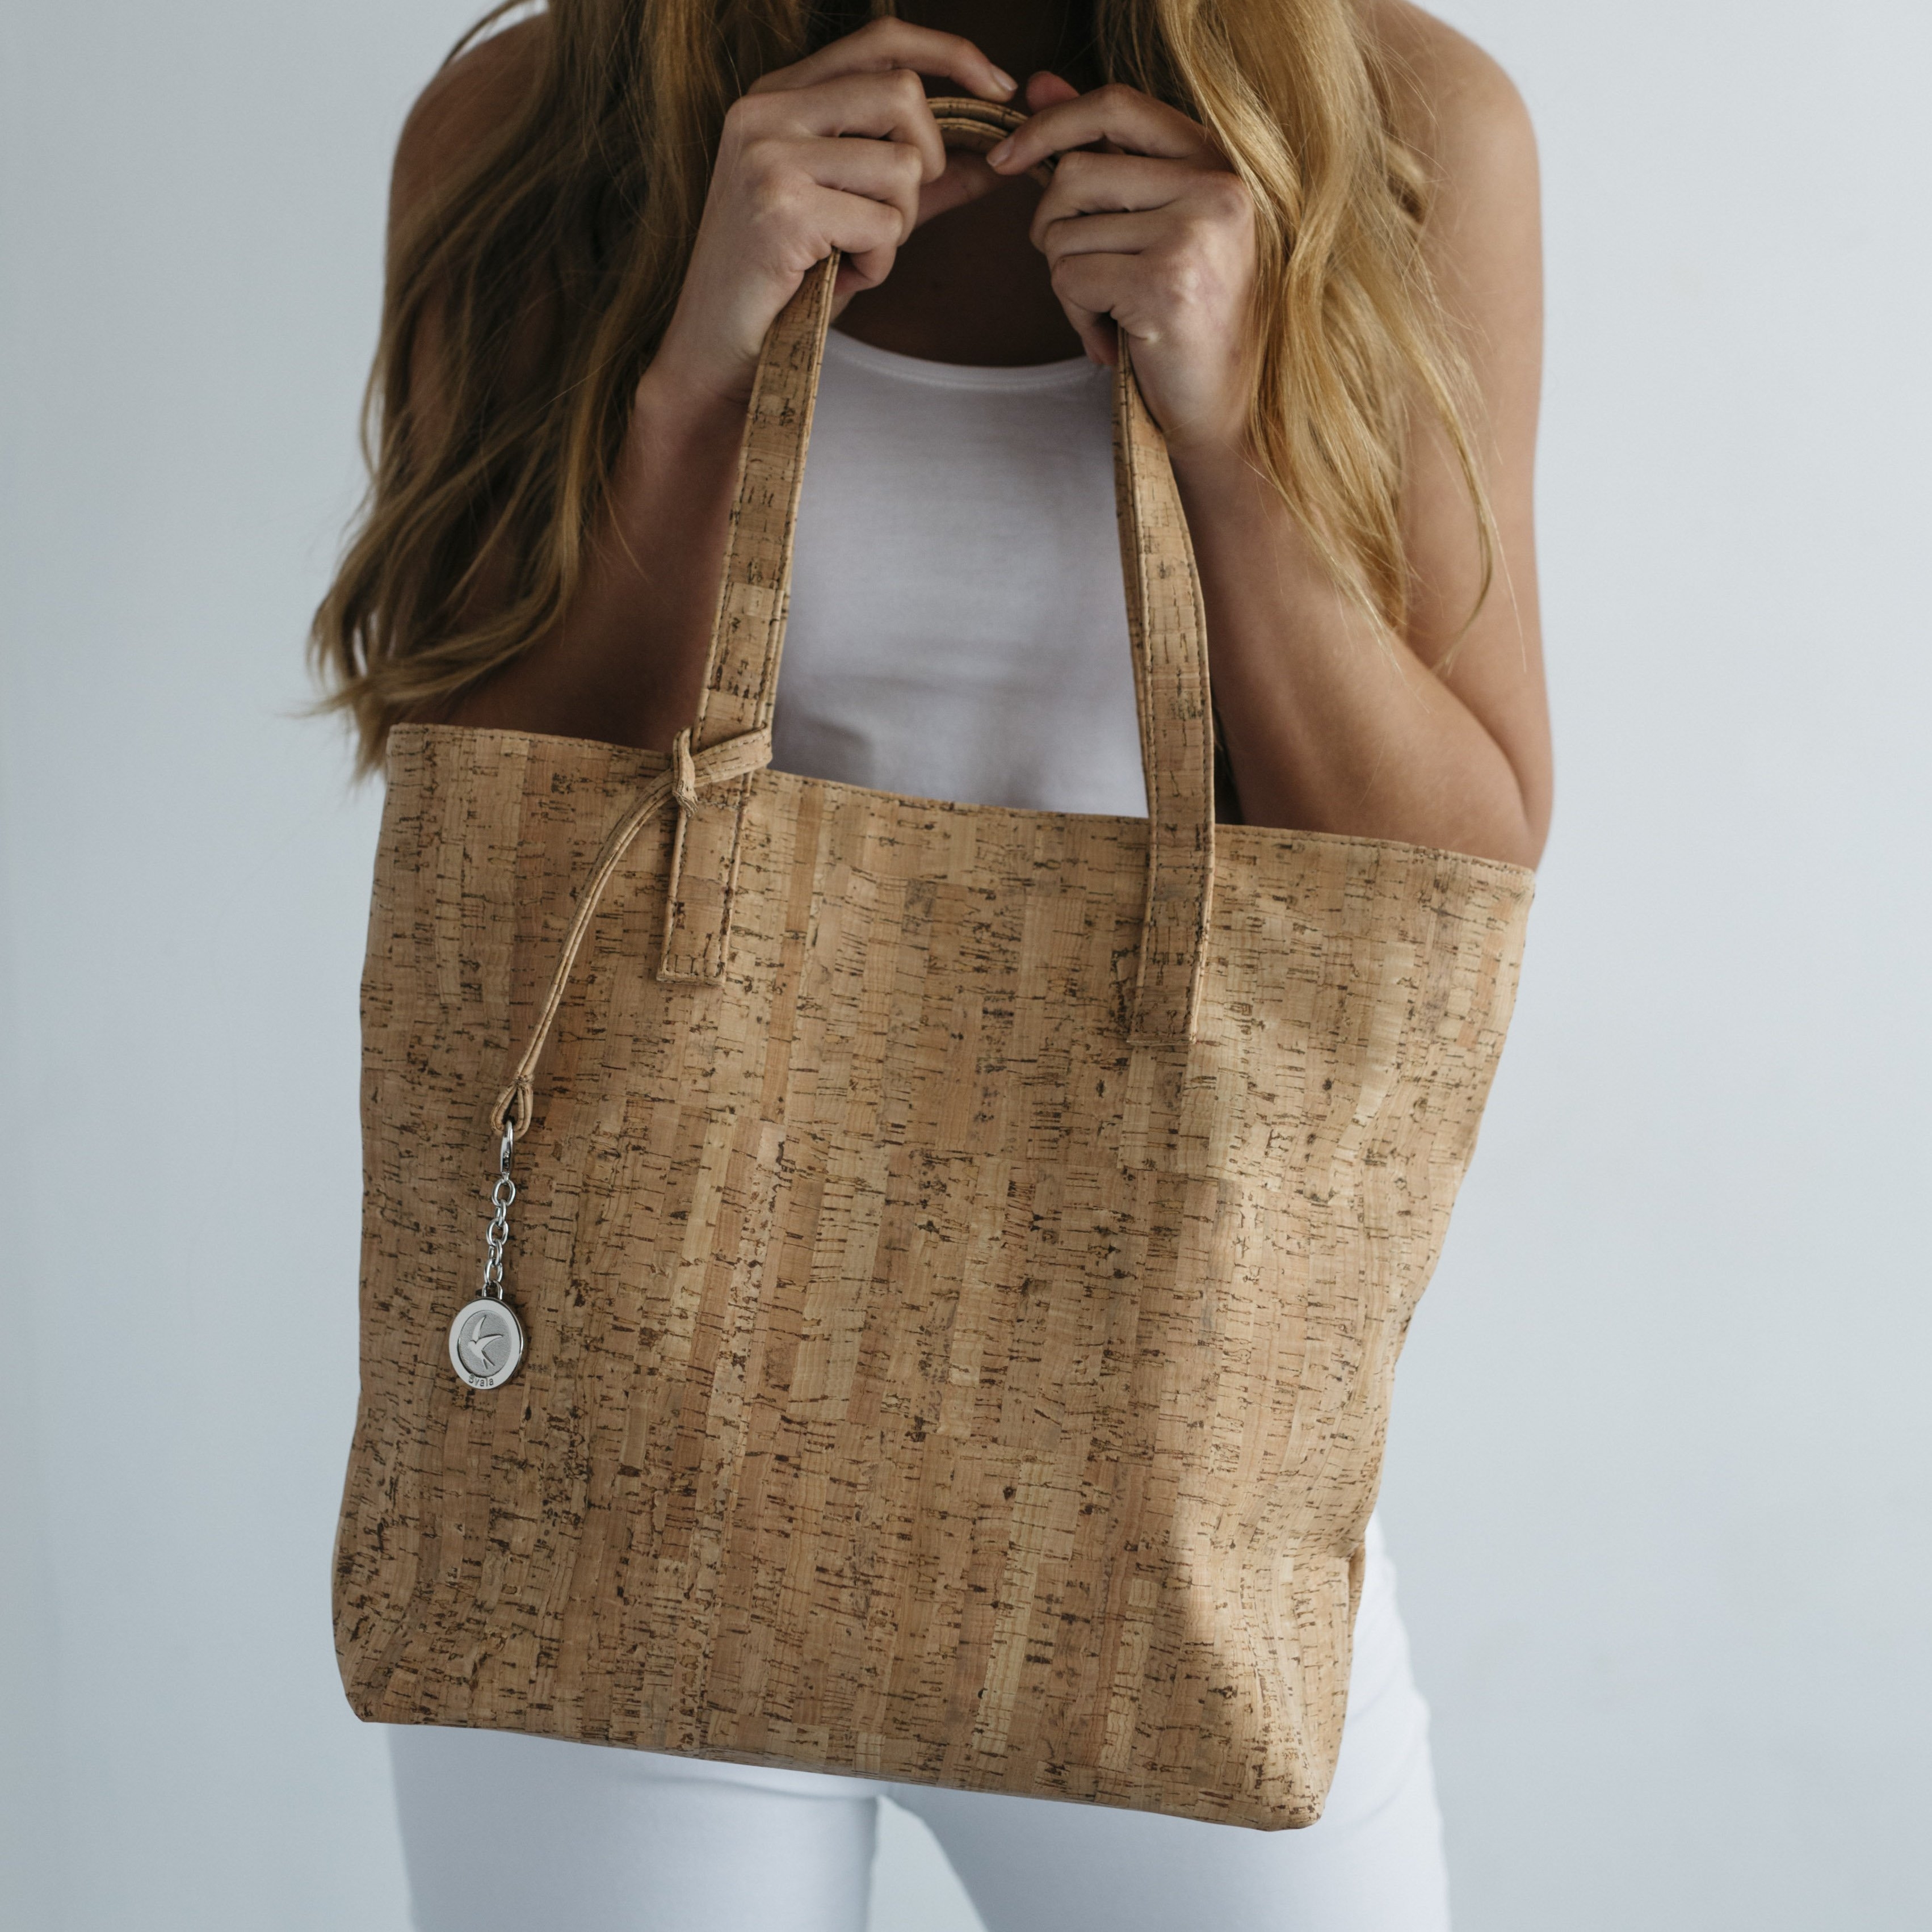 Svala - simma tote natural cork with model.jpg 894be65b3e4c